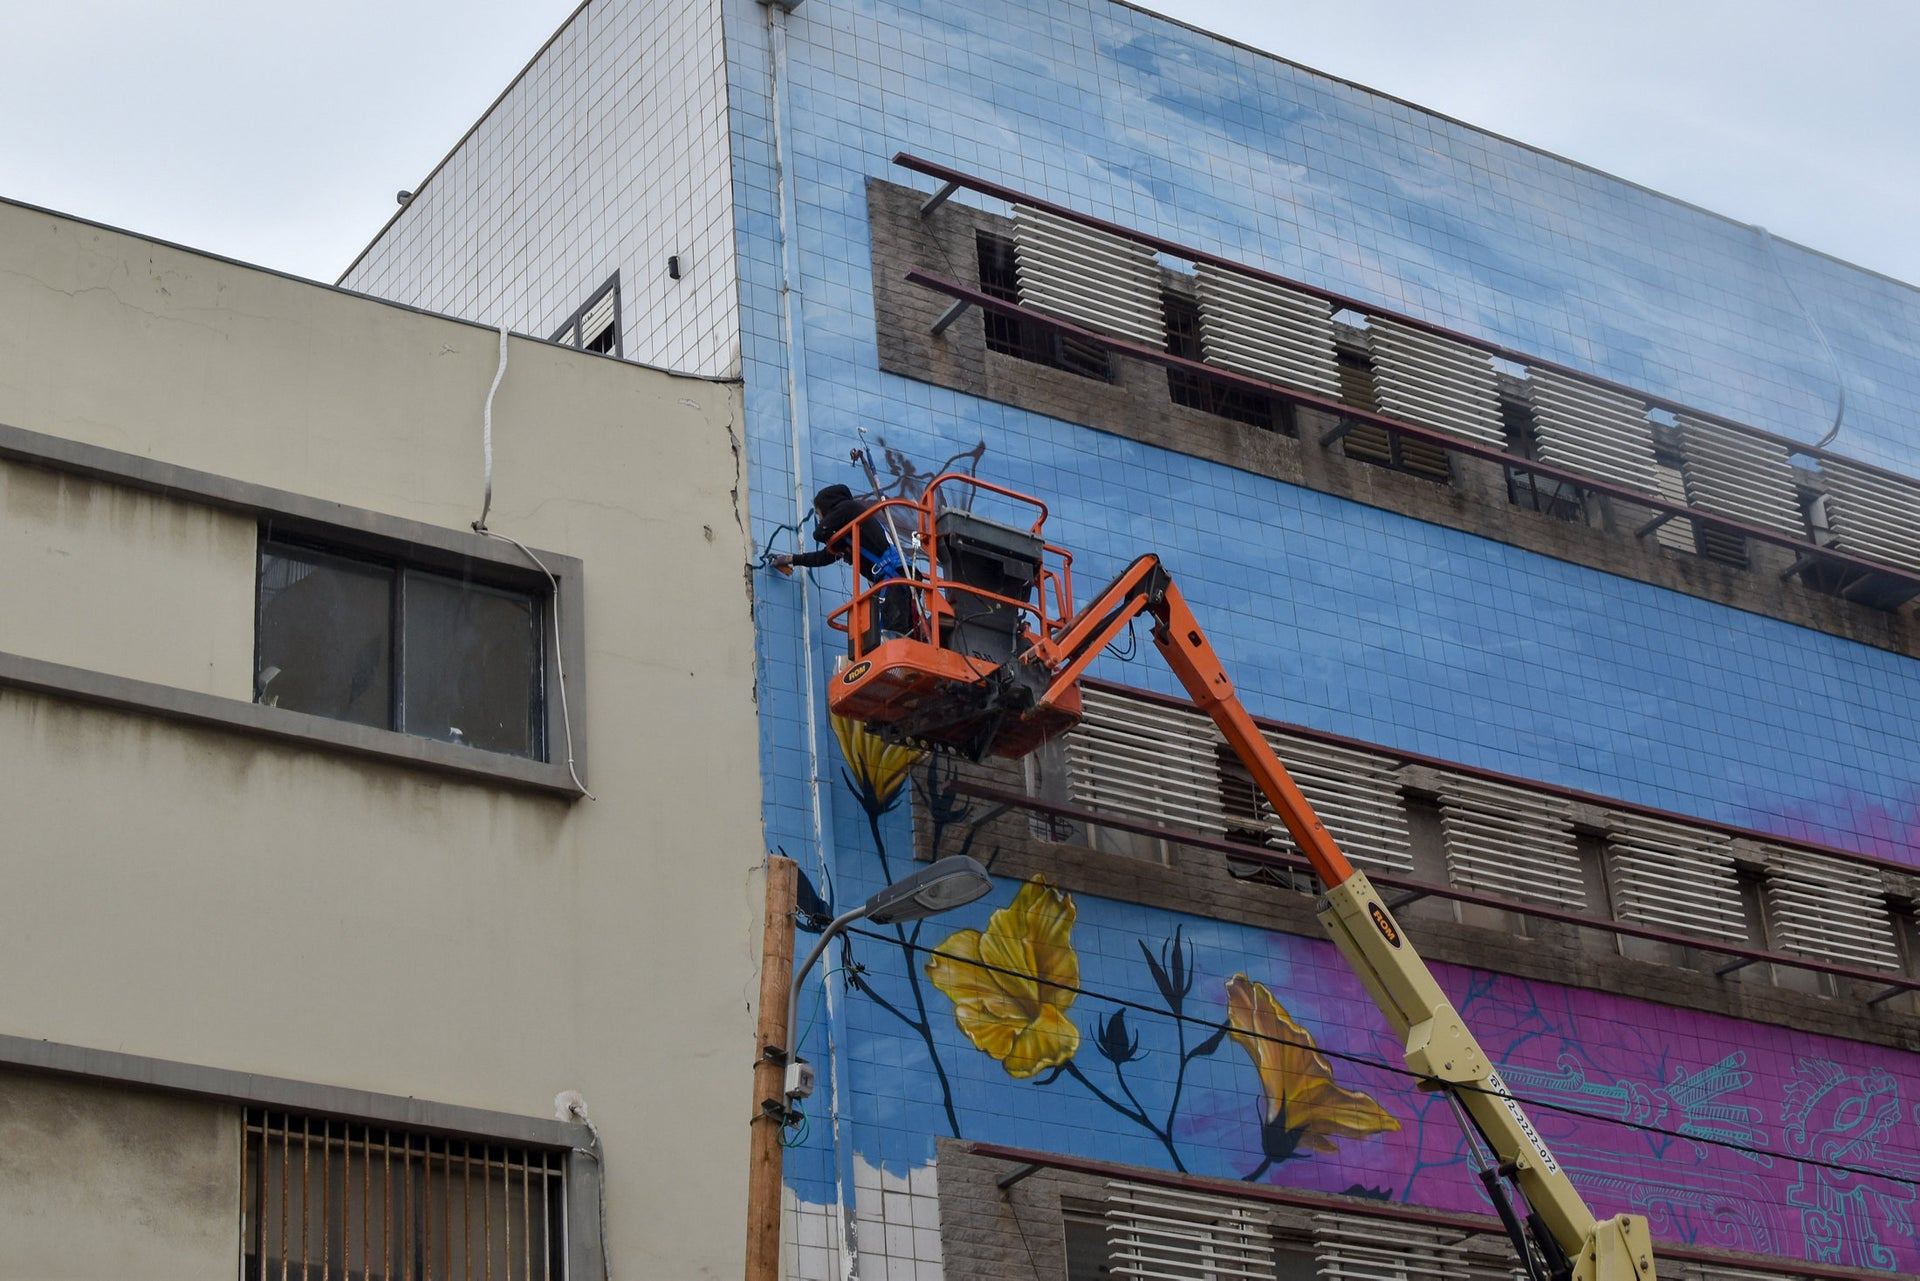 Libre working on the old Honigman factory in south Tel Aviv. The work includes a wolf, a lamb and a character inspired by a janitor at a nearby school.